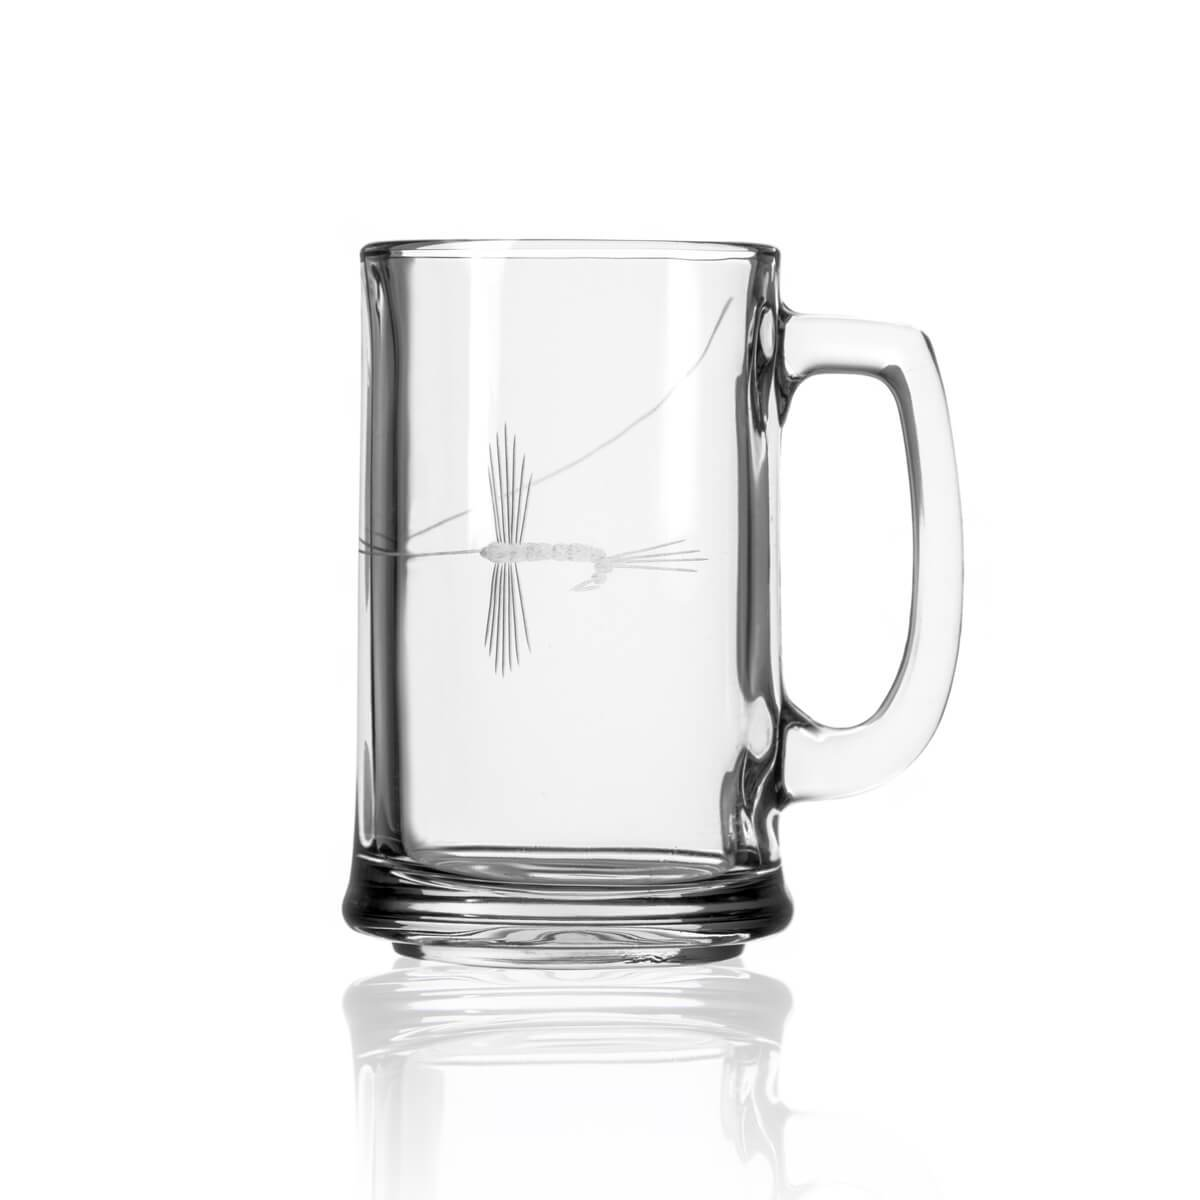 Rolf Glass - Fly Fishing 15oz Beer Mug